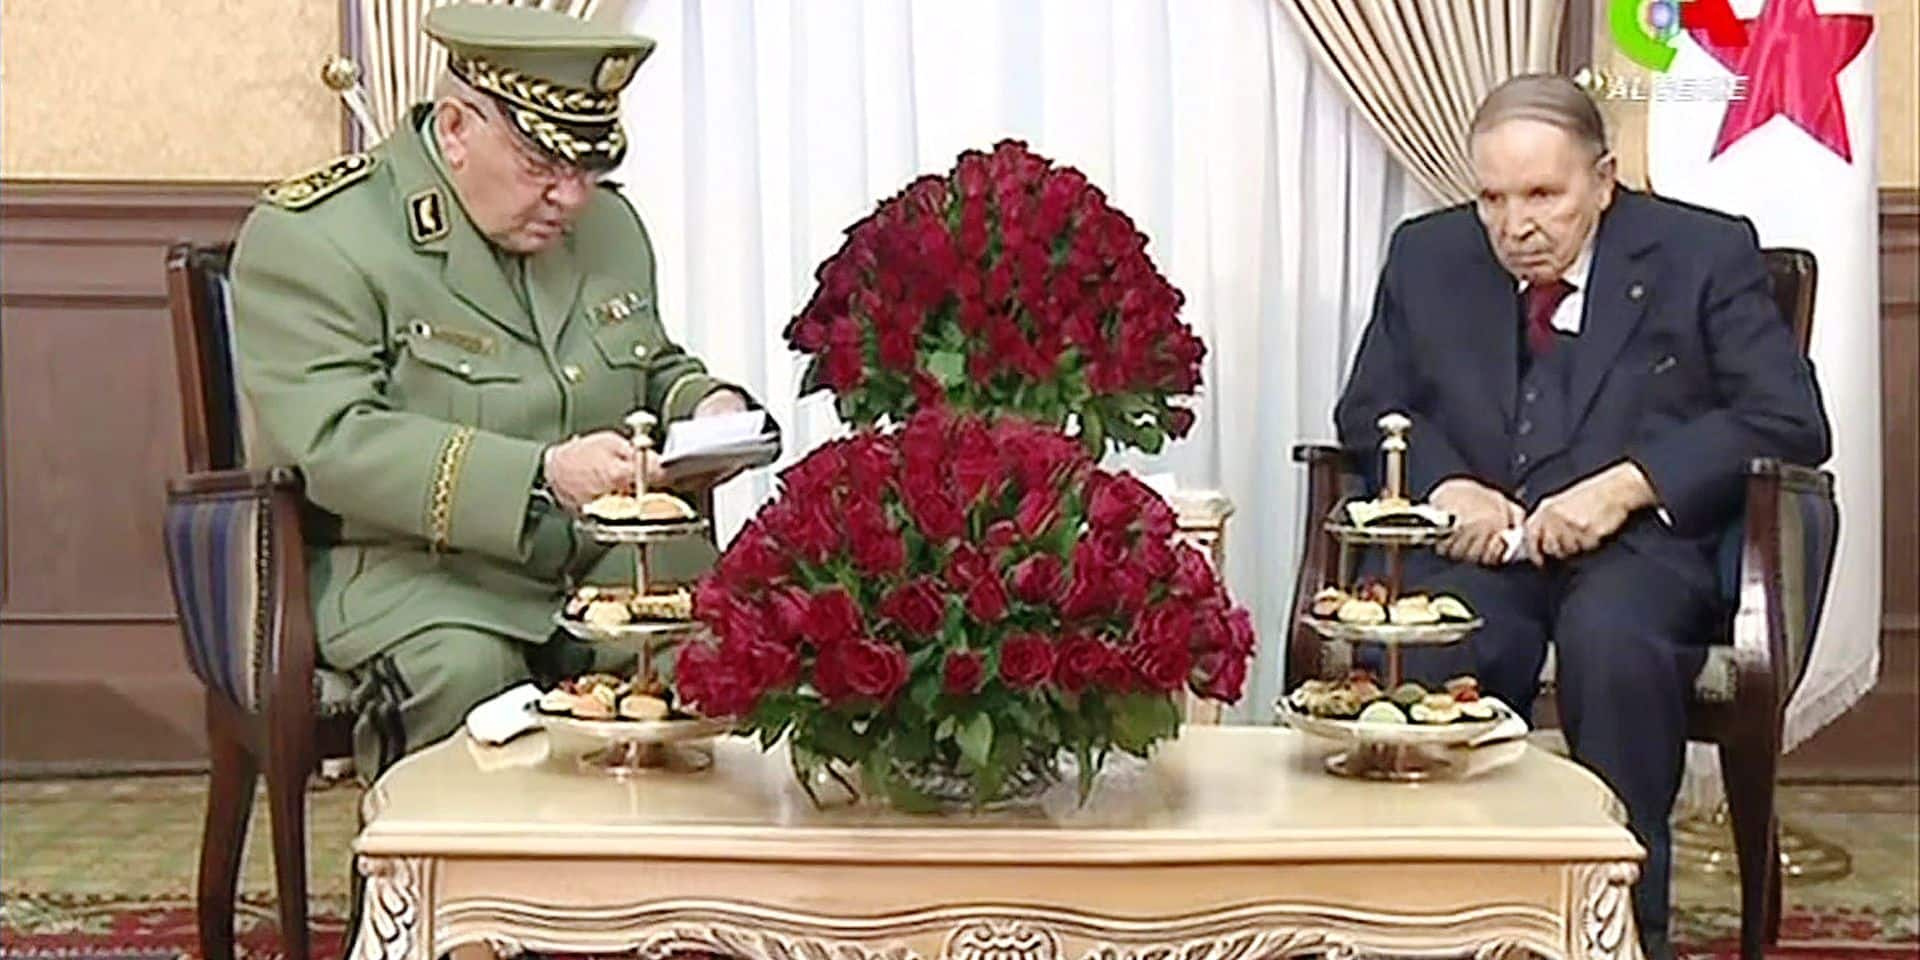 """(FILES) In this file video grab taken from footage broadcast by Algeria's """"Canal Algerie"""" on March 11, 2019, Algerian President Abdelaziz Bouteflika (R) meets with Algeria's army chief, Ahmed Gaid Salah in the capital Algiers. - Algeria army chief Salah called on March 26, 2019 for Bouteflika to be declared unfit to rule. Bouteflika said on February 22 he would run for a fifth term in April 18 elections, despite concerns about his ability to rule. The 82-year-old uses a wheelchair and has rarely appeared in public since suffering a stroke in 2013. His current mandate expires on April 28. (Photo by - / CANAL ALGERIE / AFP) / BEST QUALITY AVAILABLE / XGTY / == RESTRICTED TO EDITORIAL USE - MANDATORY CREDIT """"AFP PHOTO / HO / CANAL ALGERIE"""" - NO MARKETING NO ADVERTISING CAMPAIGNS - DISTRIBUTED AS A SERVICE TO CLIENTS =="""